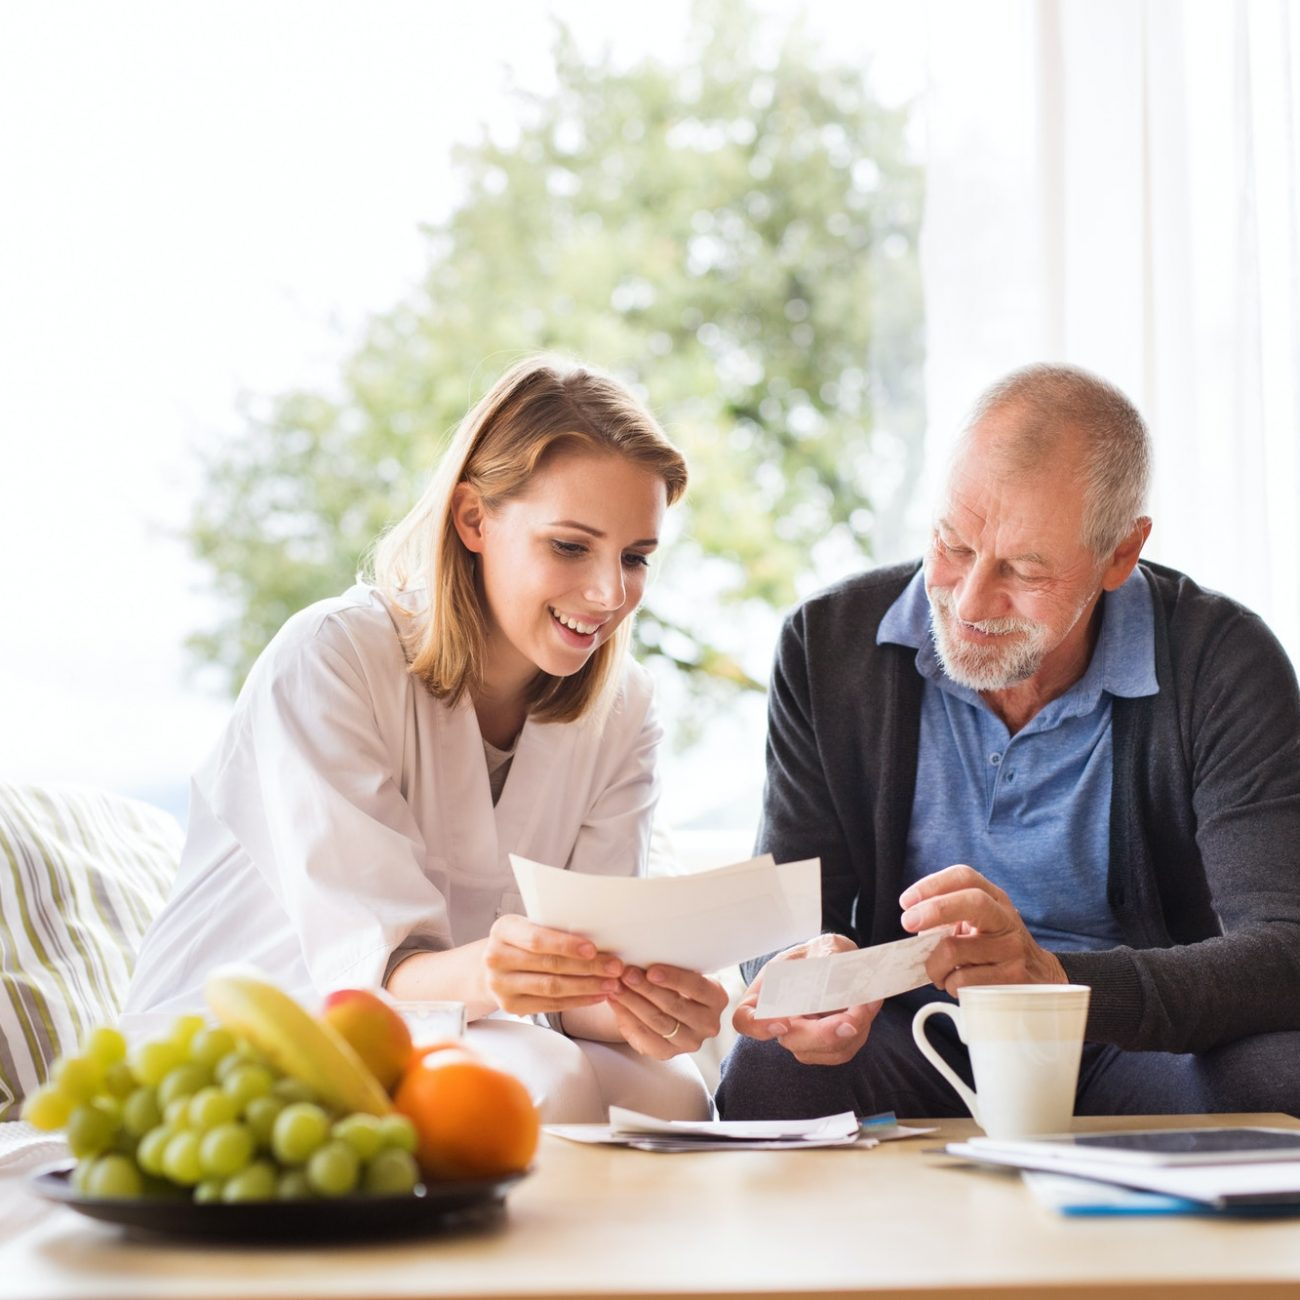 health-visitor-and-a-senior-man-with-tablet-during-home-visit-.jpg